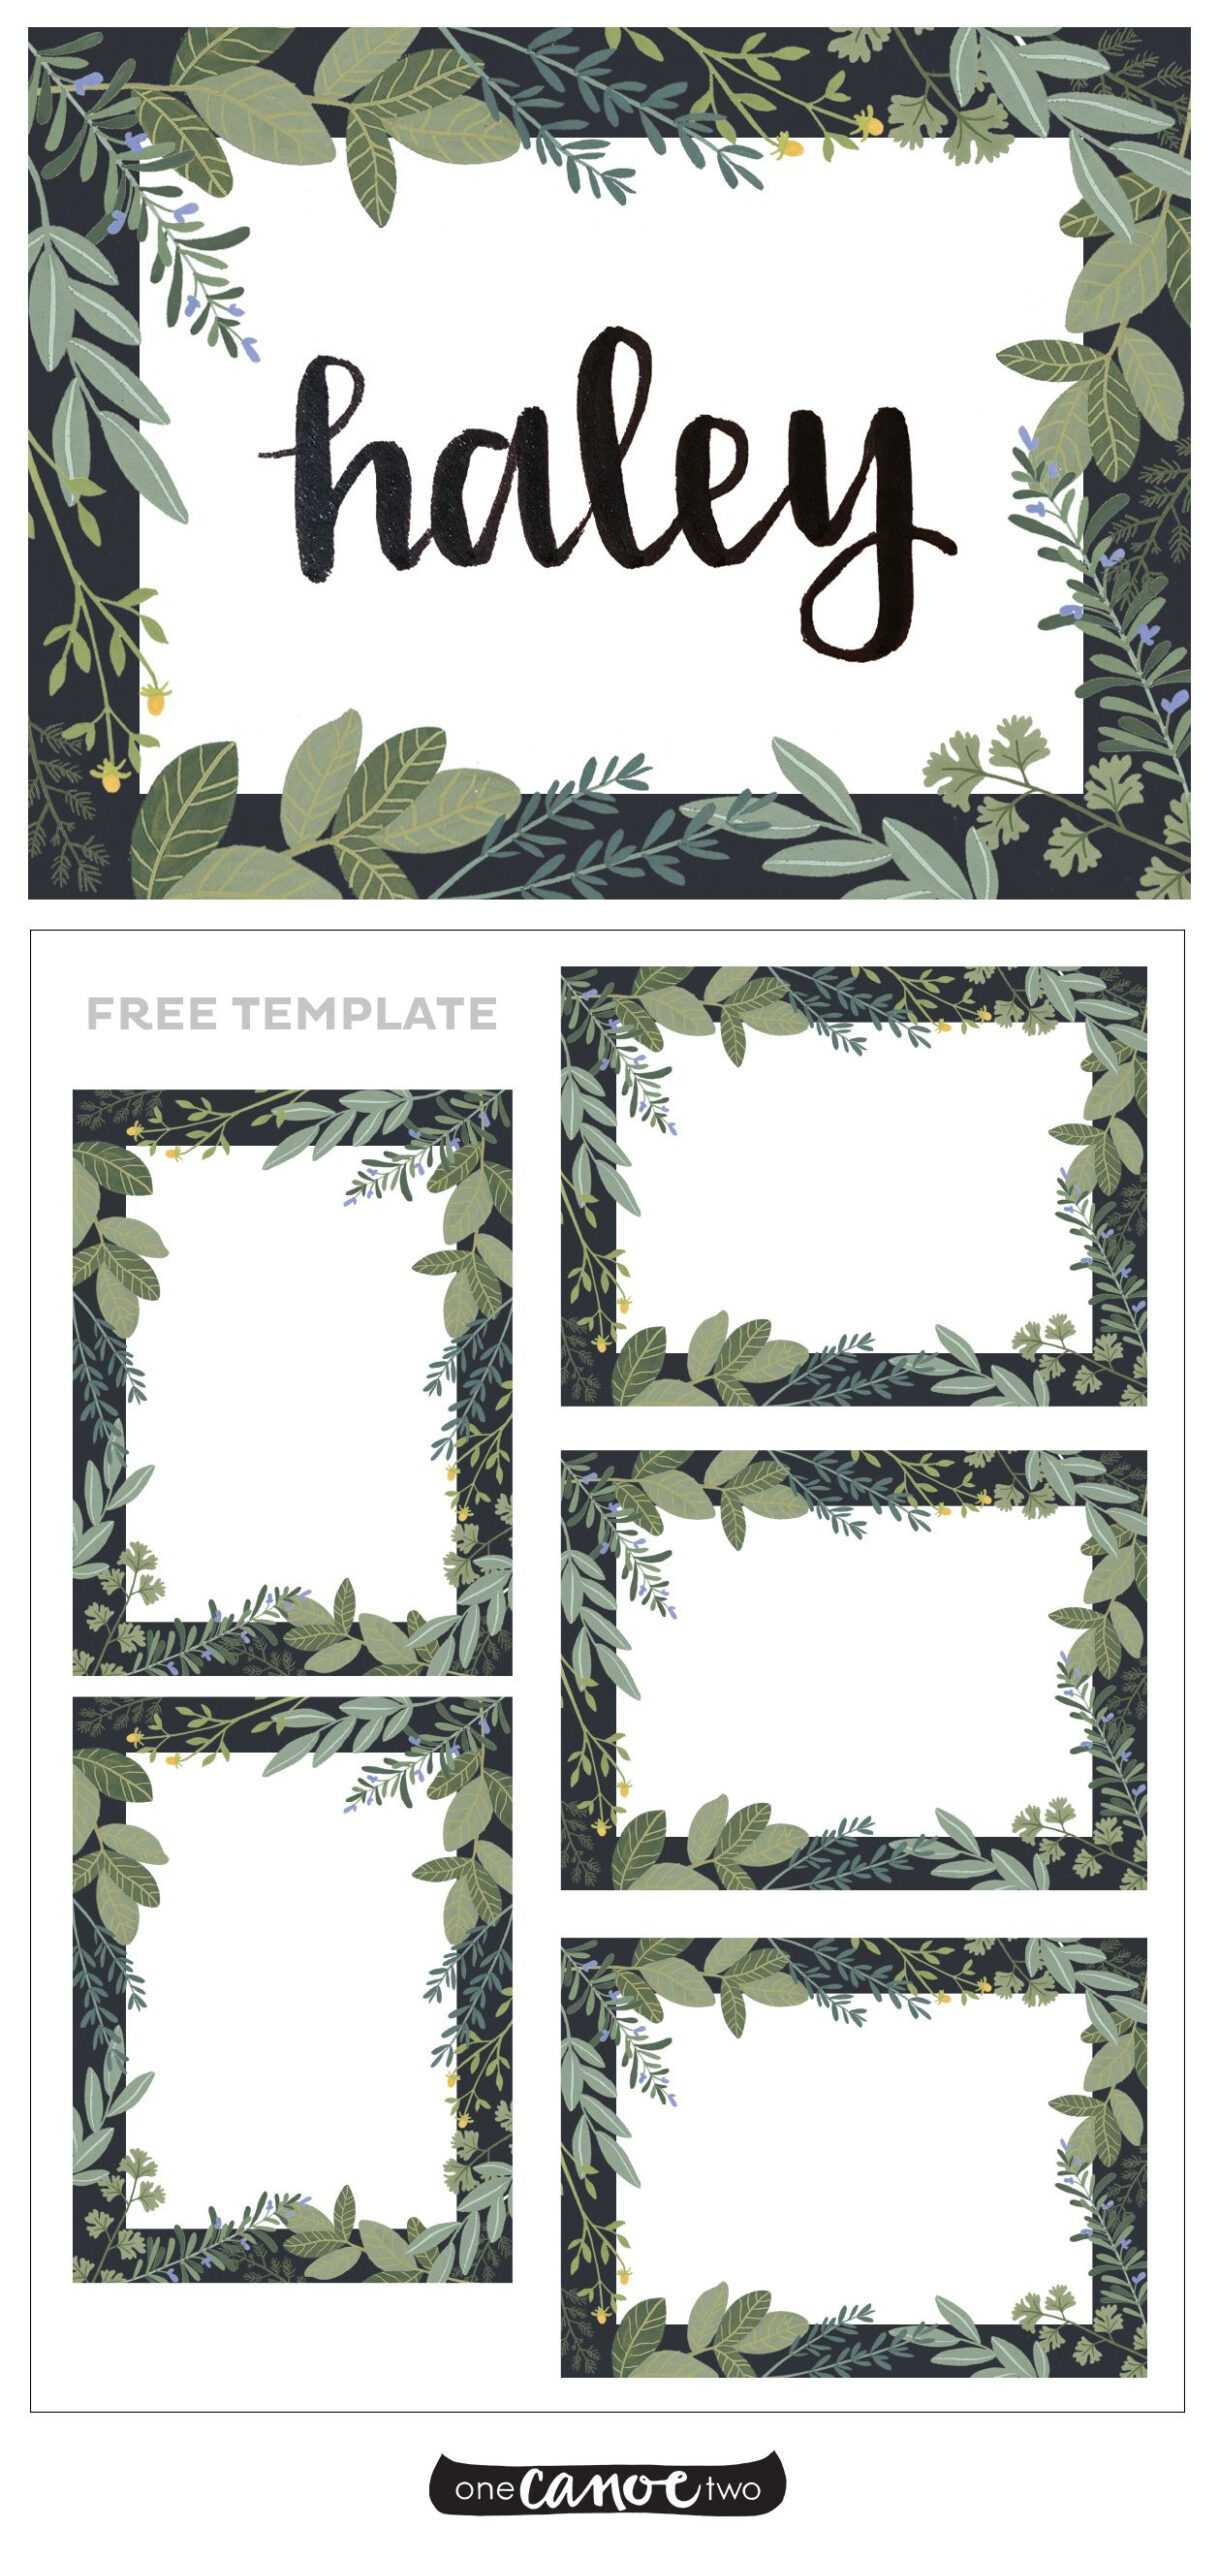 031 Free Place Card Template Excellent Ideas Download Word Throughout Free Template For Place Cards 6 Per Sheet